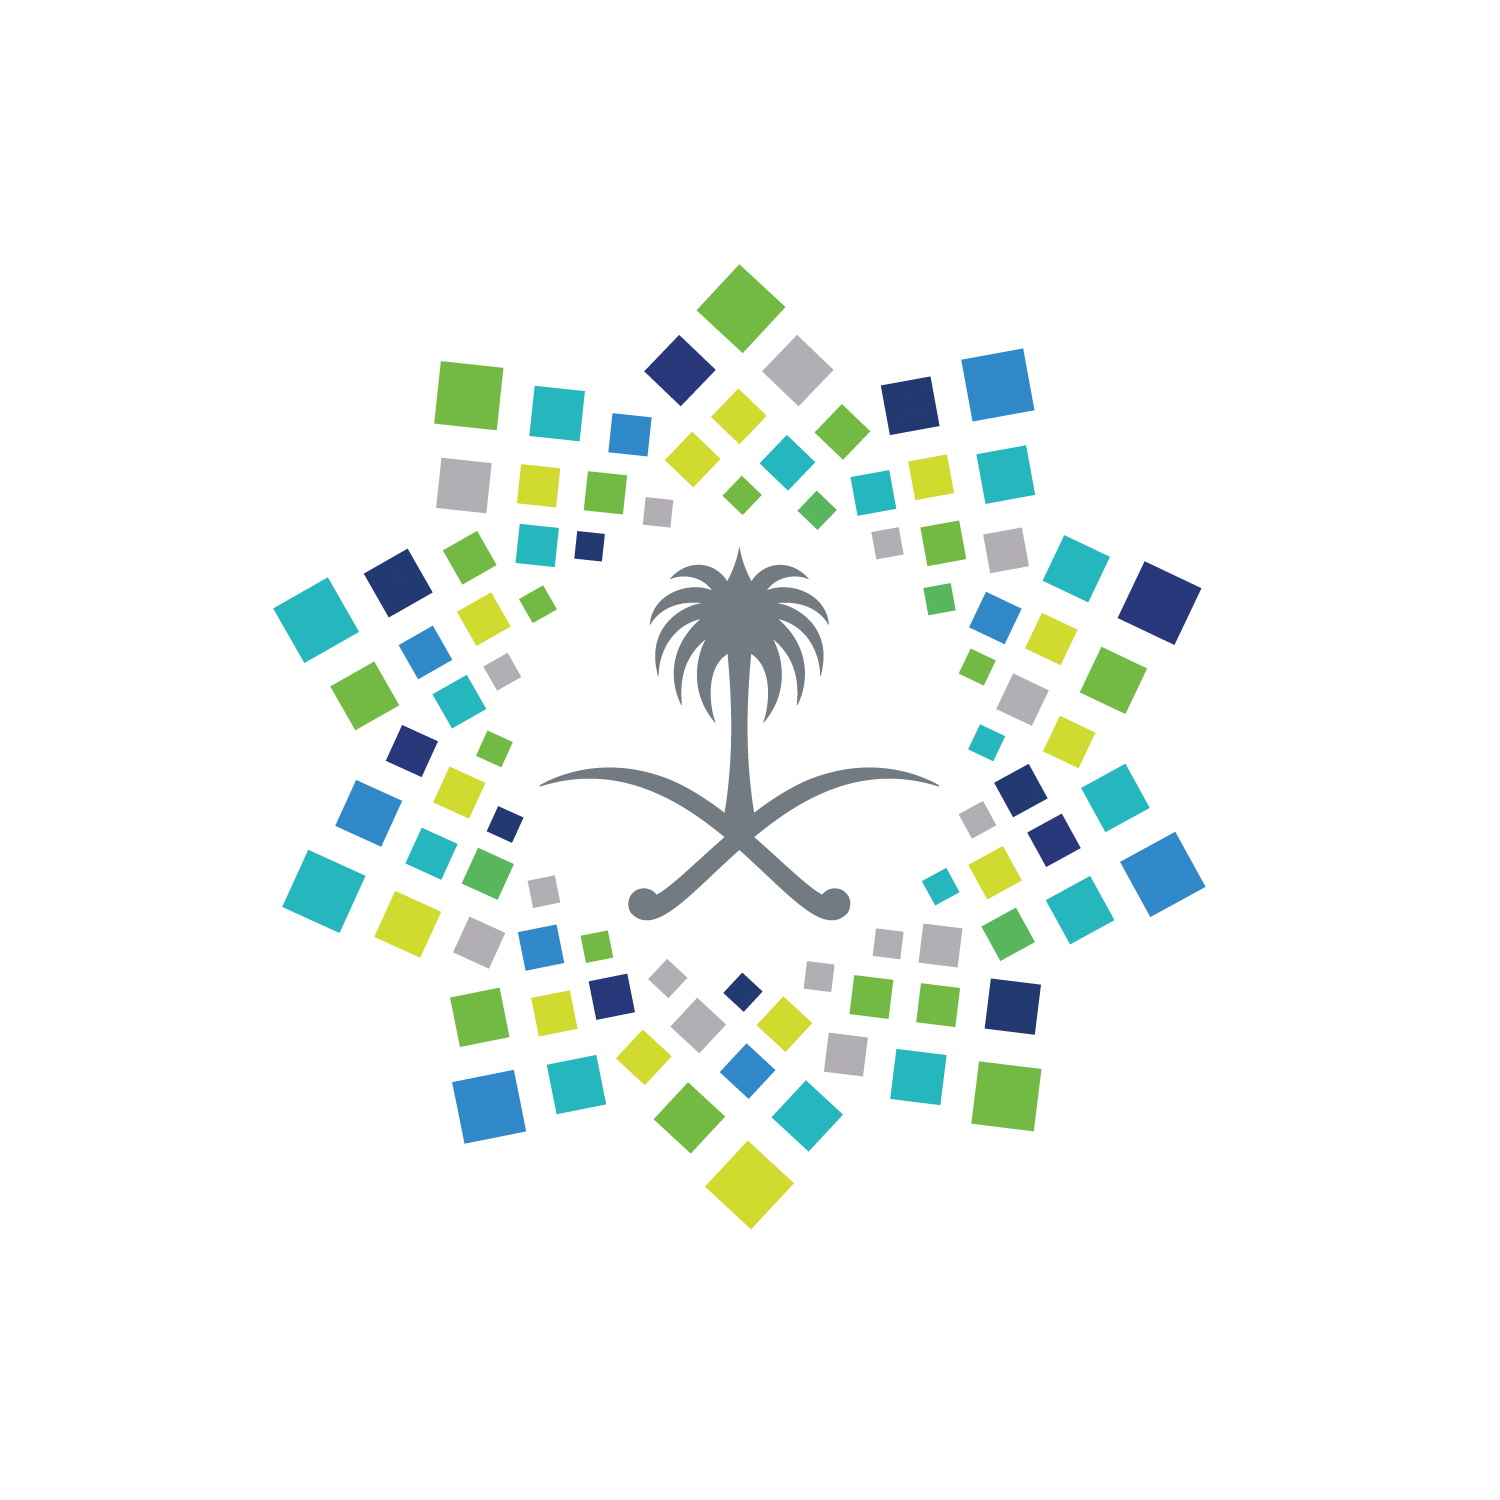 Vision2030 Saudi Arabia Logo Png Icon Logo Design Diy Corporate Logo Design Inspiration Logo Design Inspiration